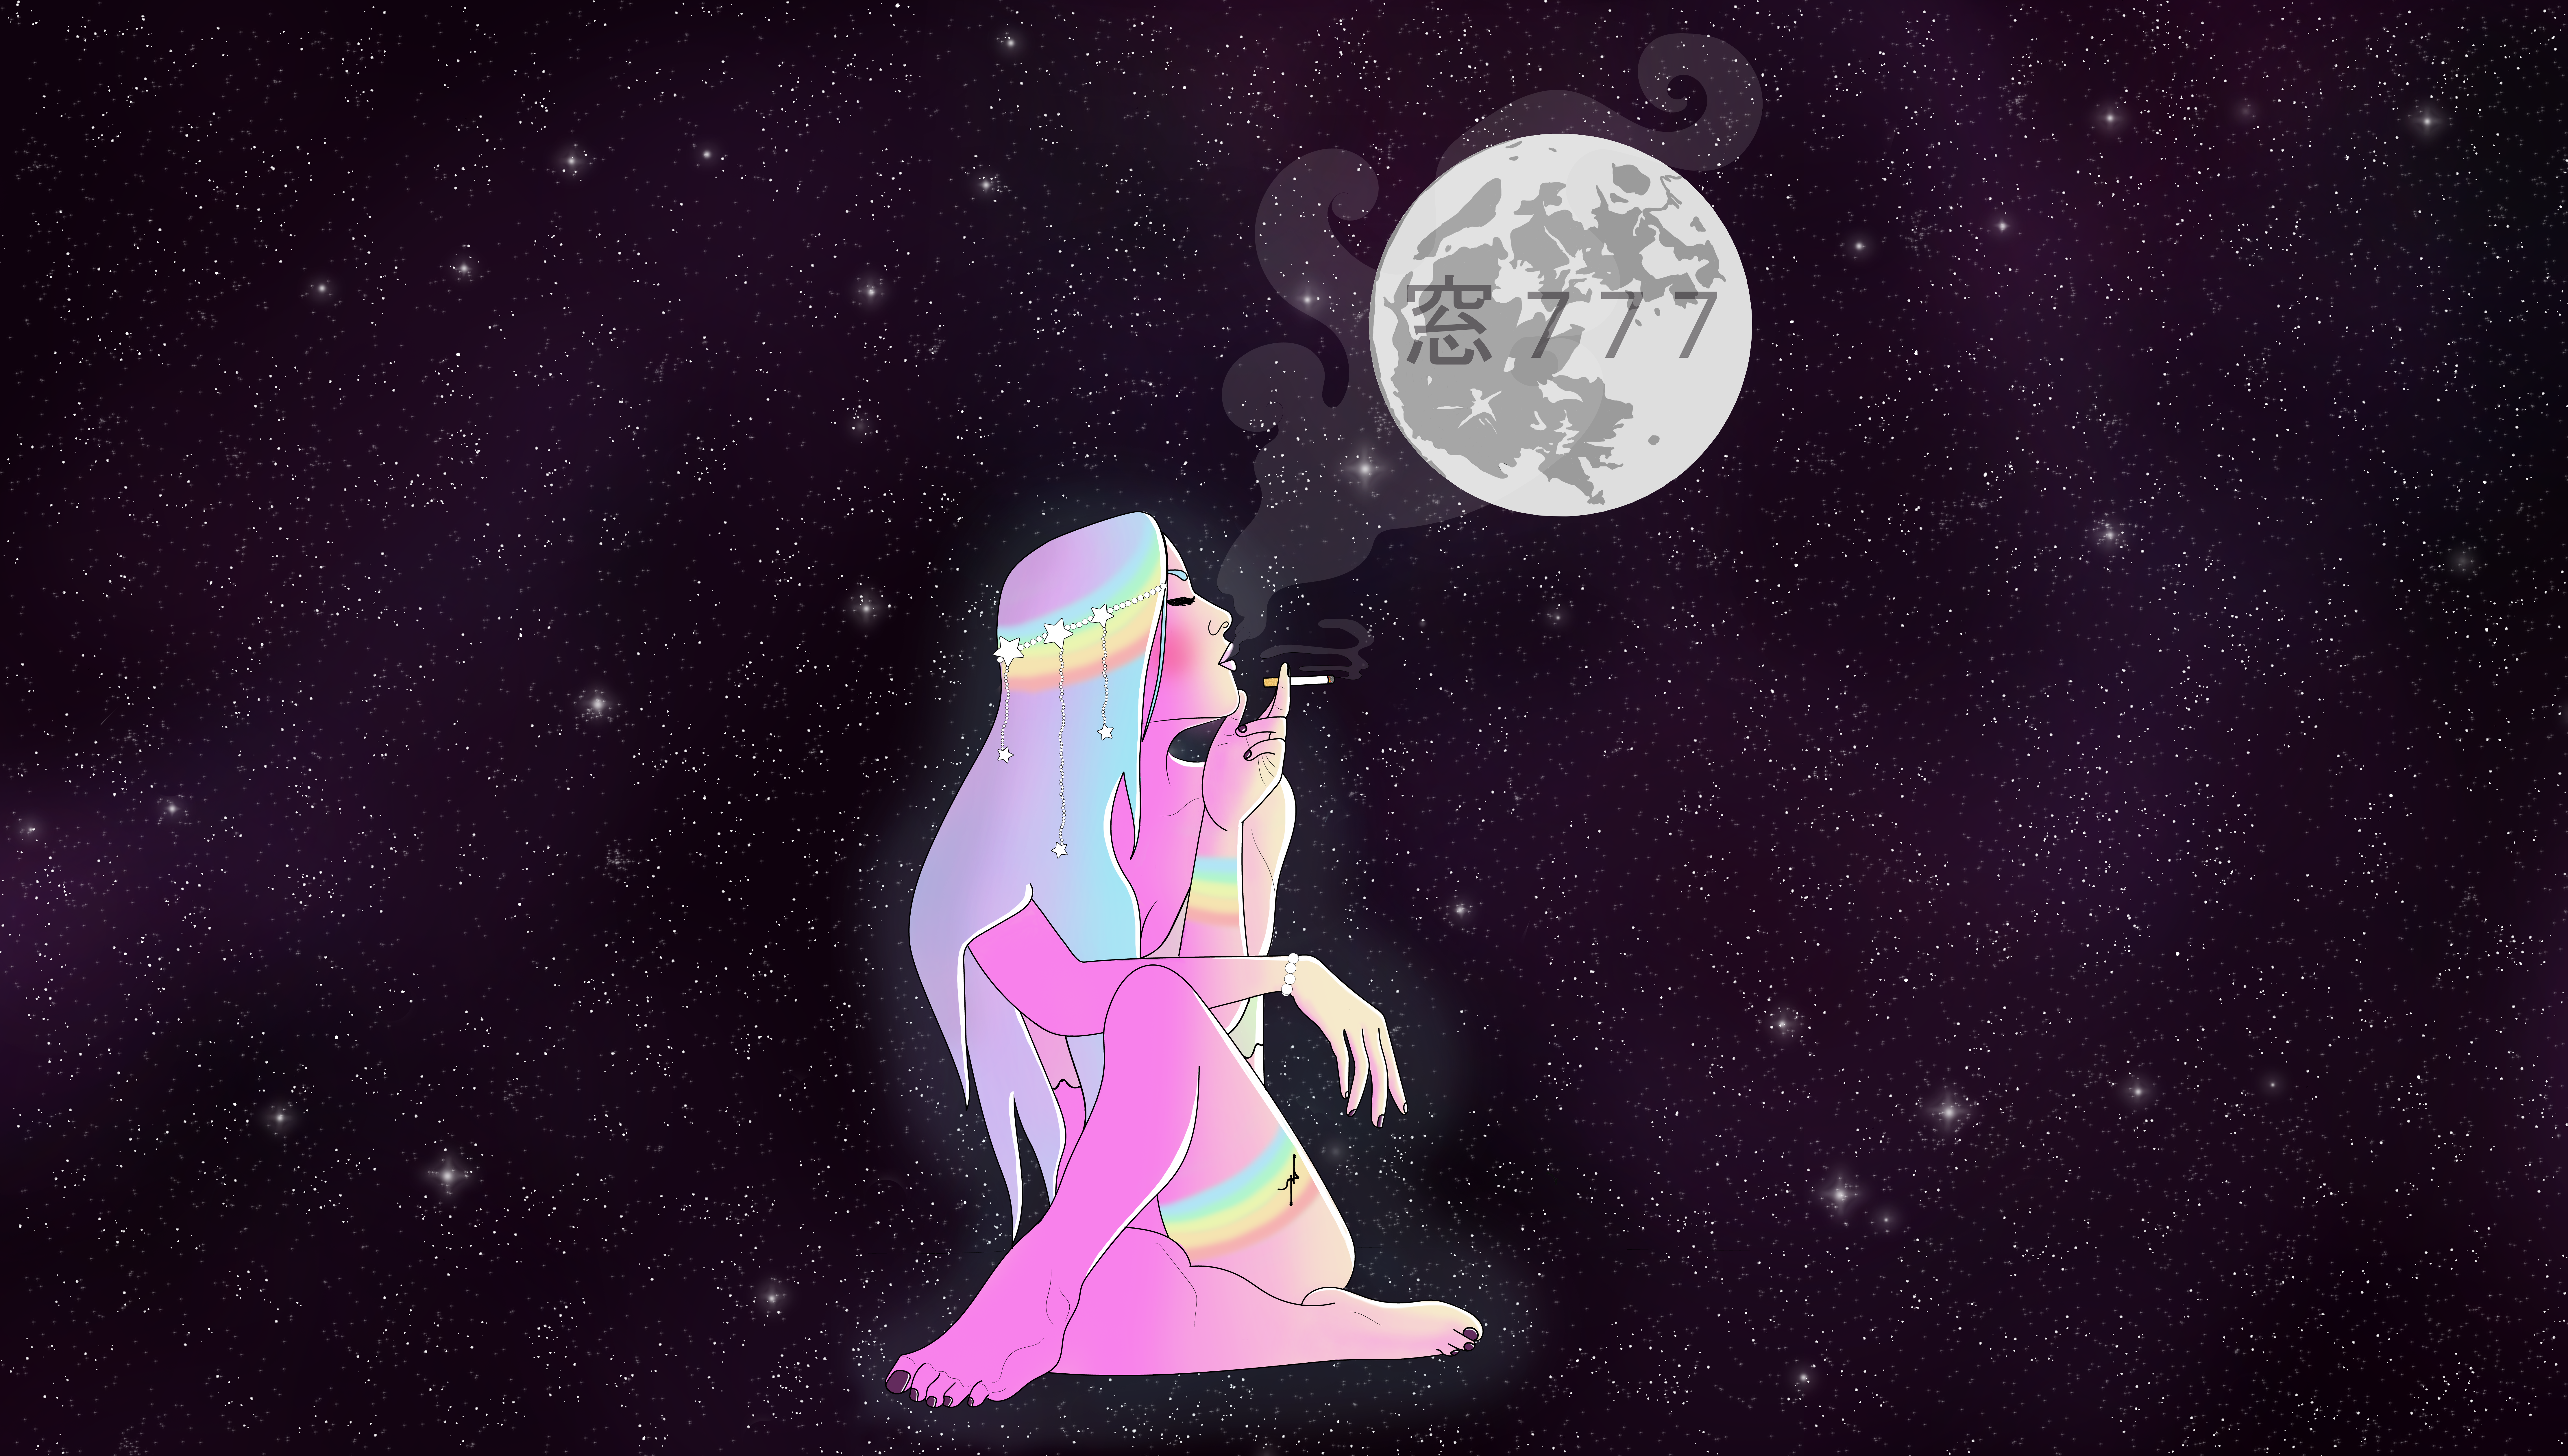 smoking in the moon wallpaper.png